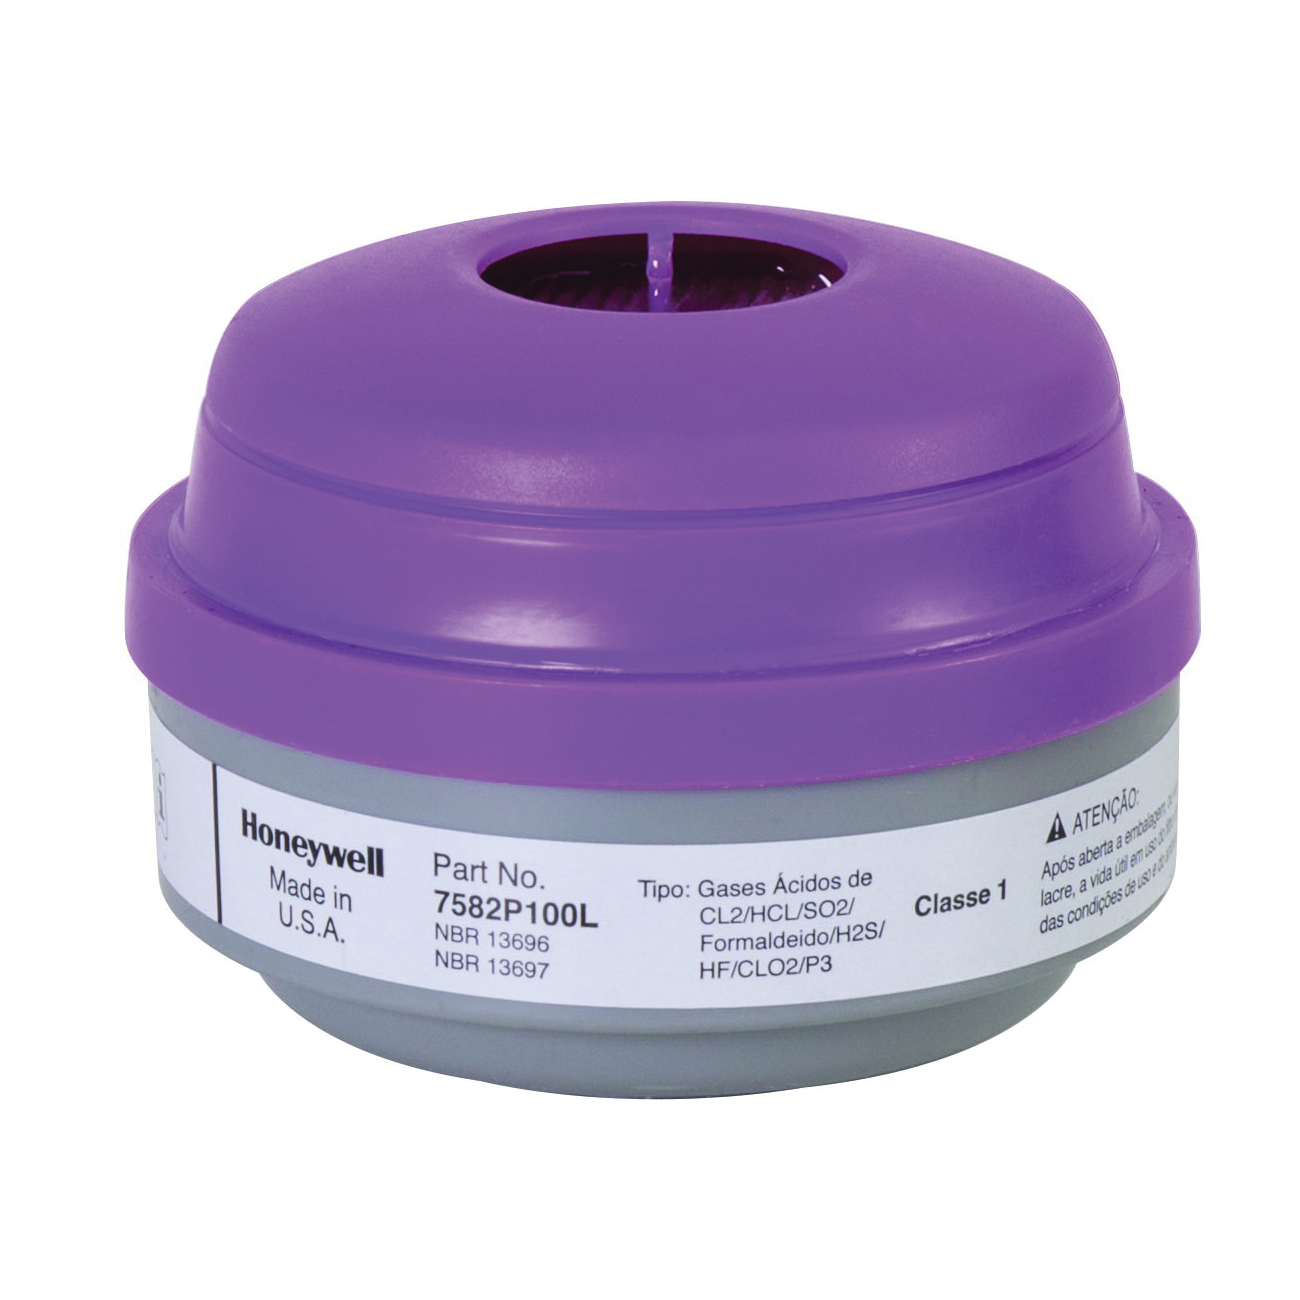 North® by Honeywell 7582P100L N Series Combination Cartridge, For Use With 5400, 5500, 7600 and 7700 Series Respirators, P100 Filter Class, 0.999 Filter Efficiency, Thread Connection